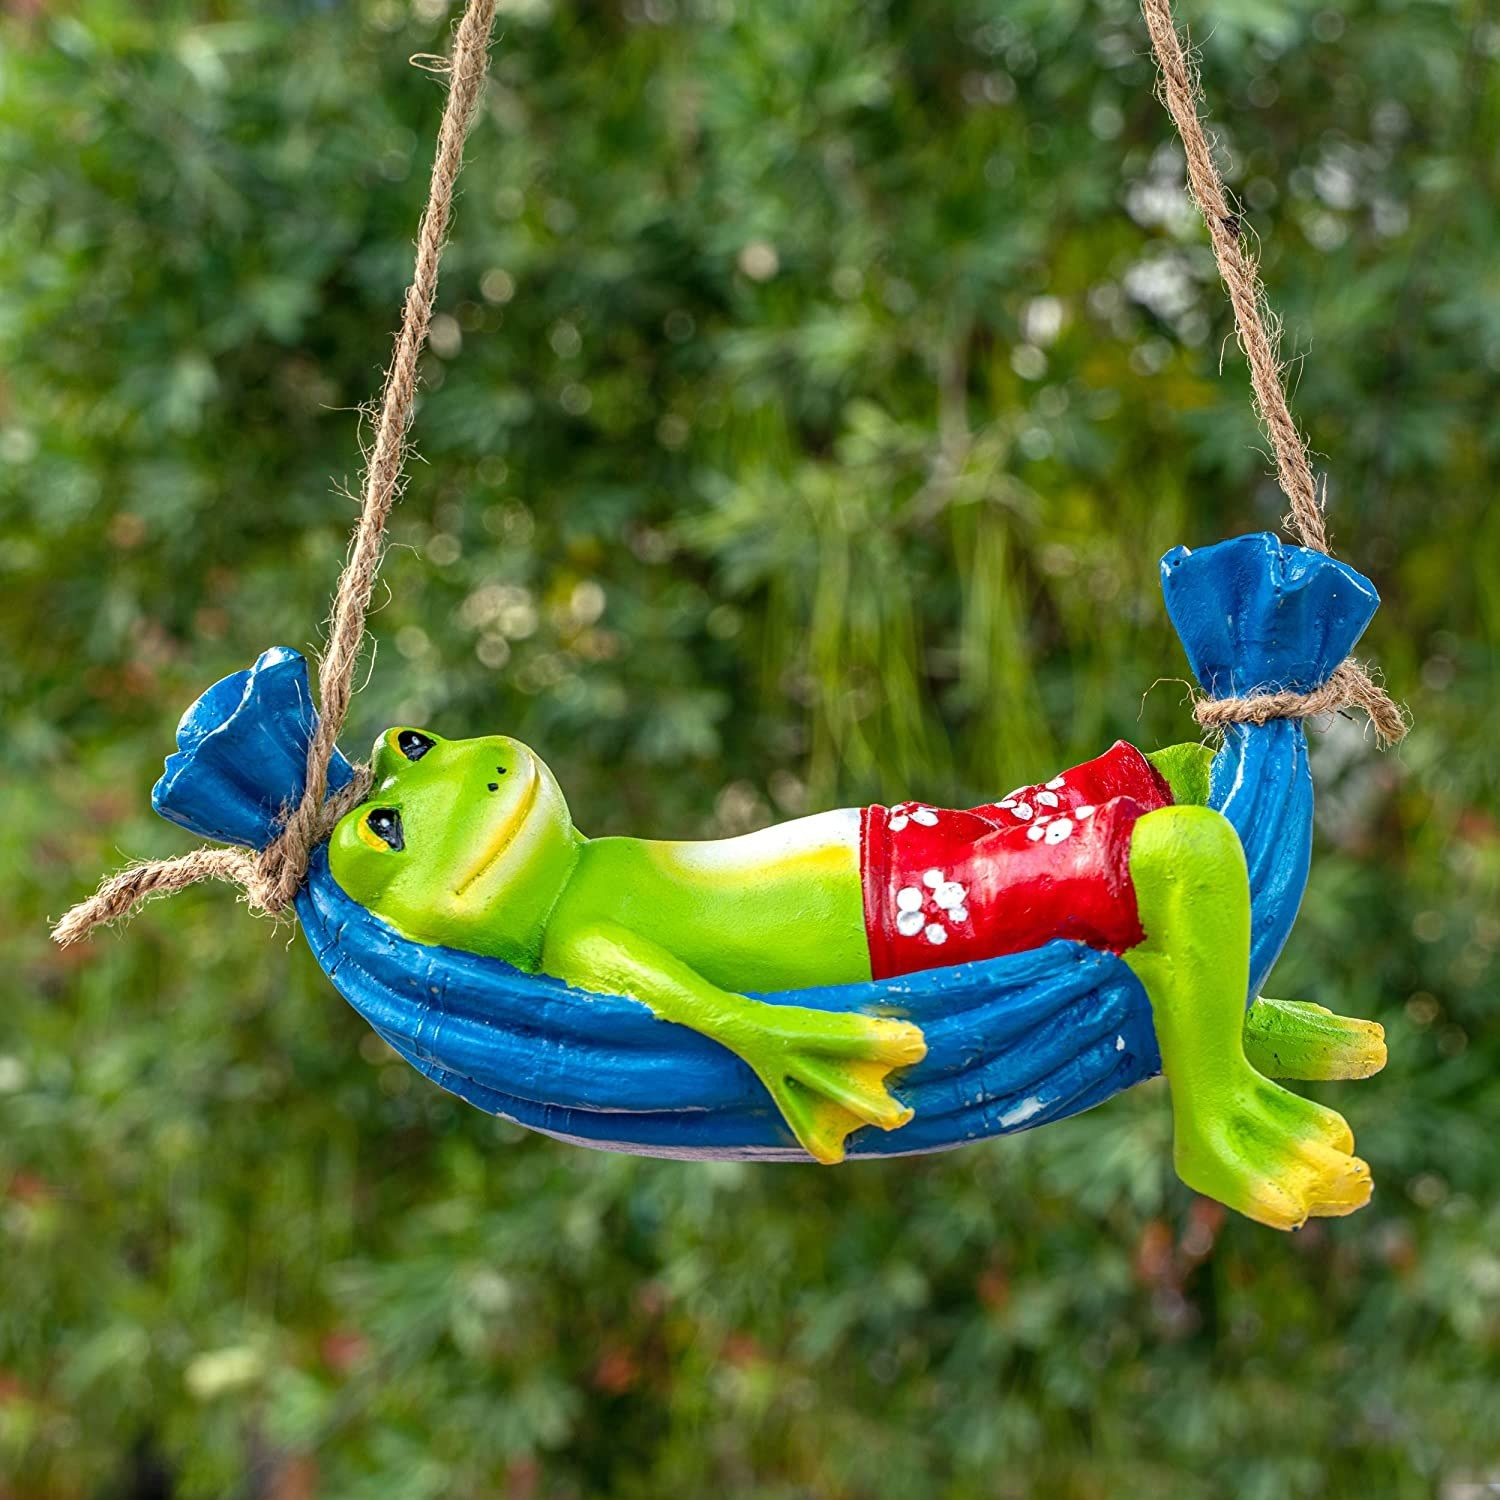 A  figurine of a frog on a hammock